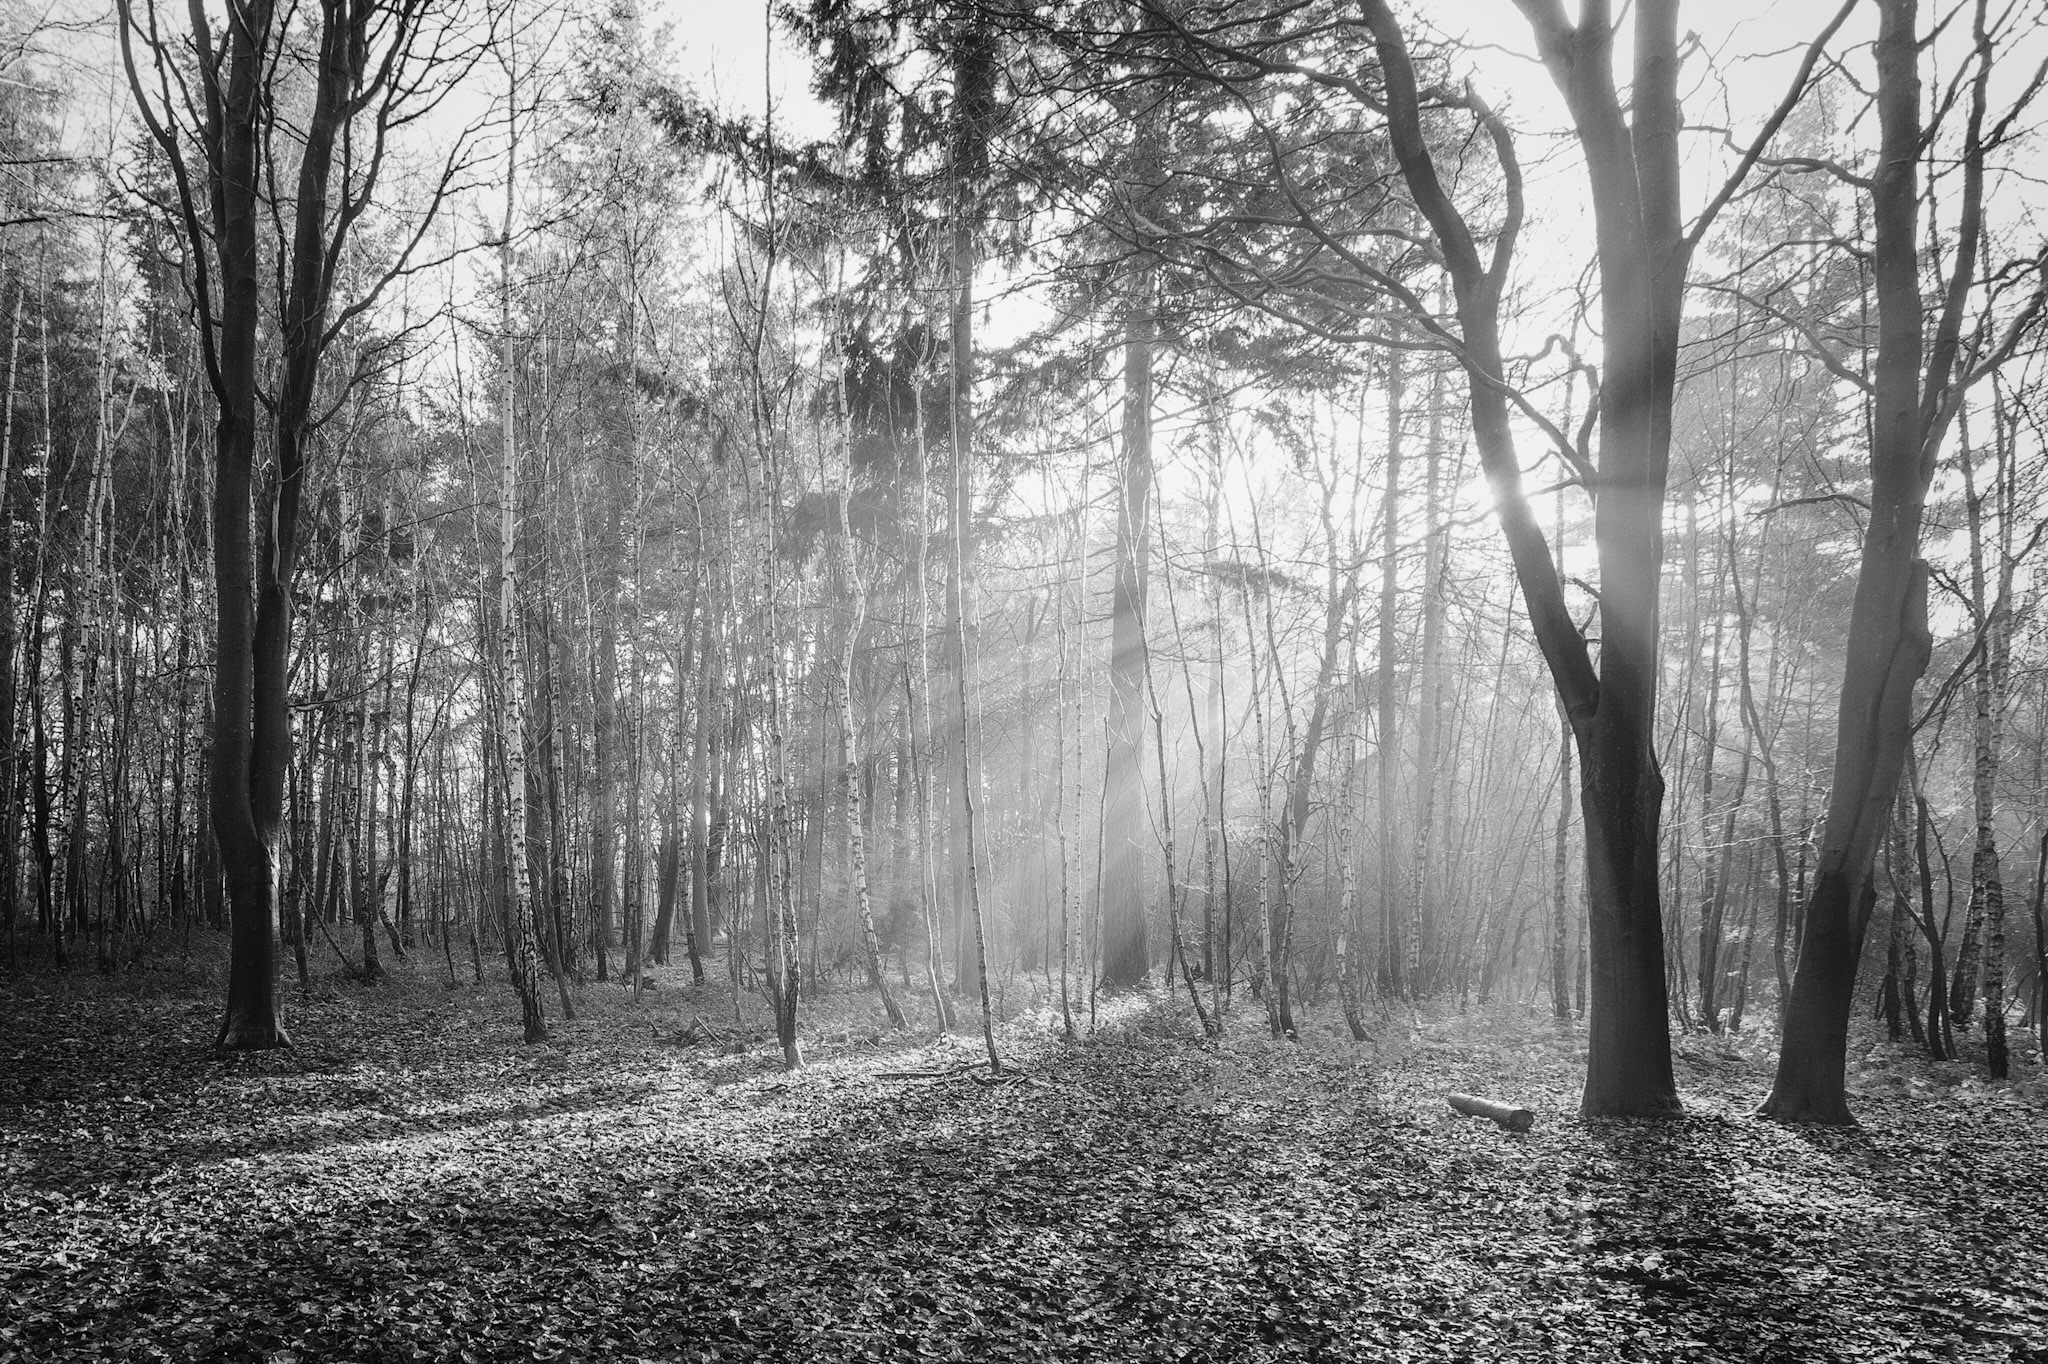 The woods at The Vyne - landscape photography in Hampshire by Rick McEvoy